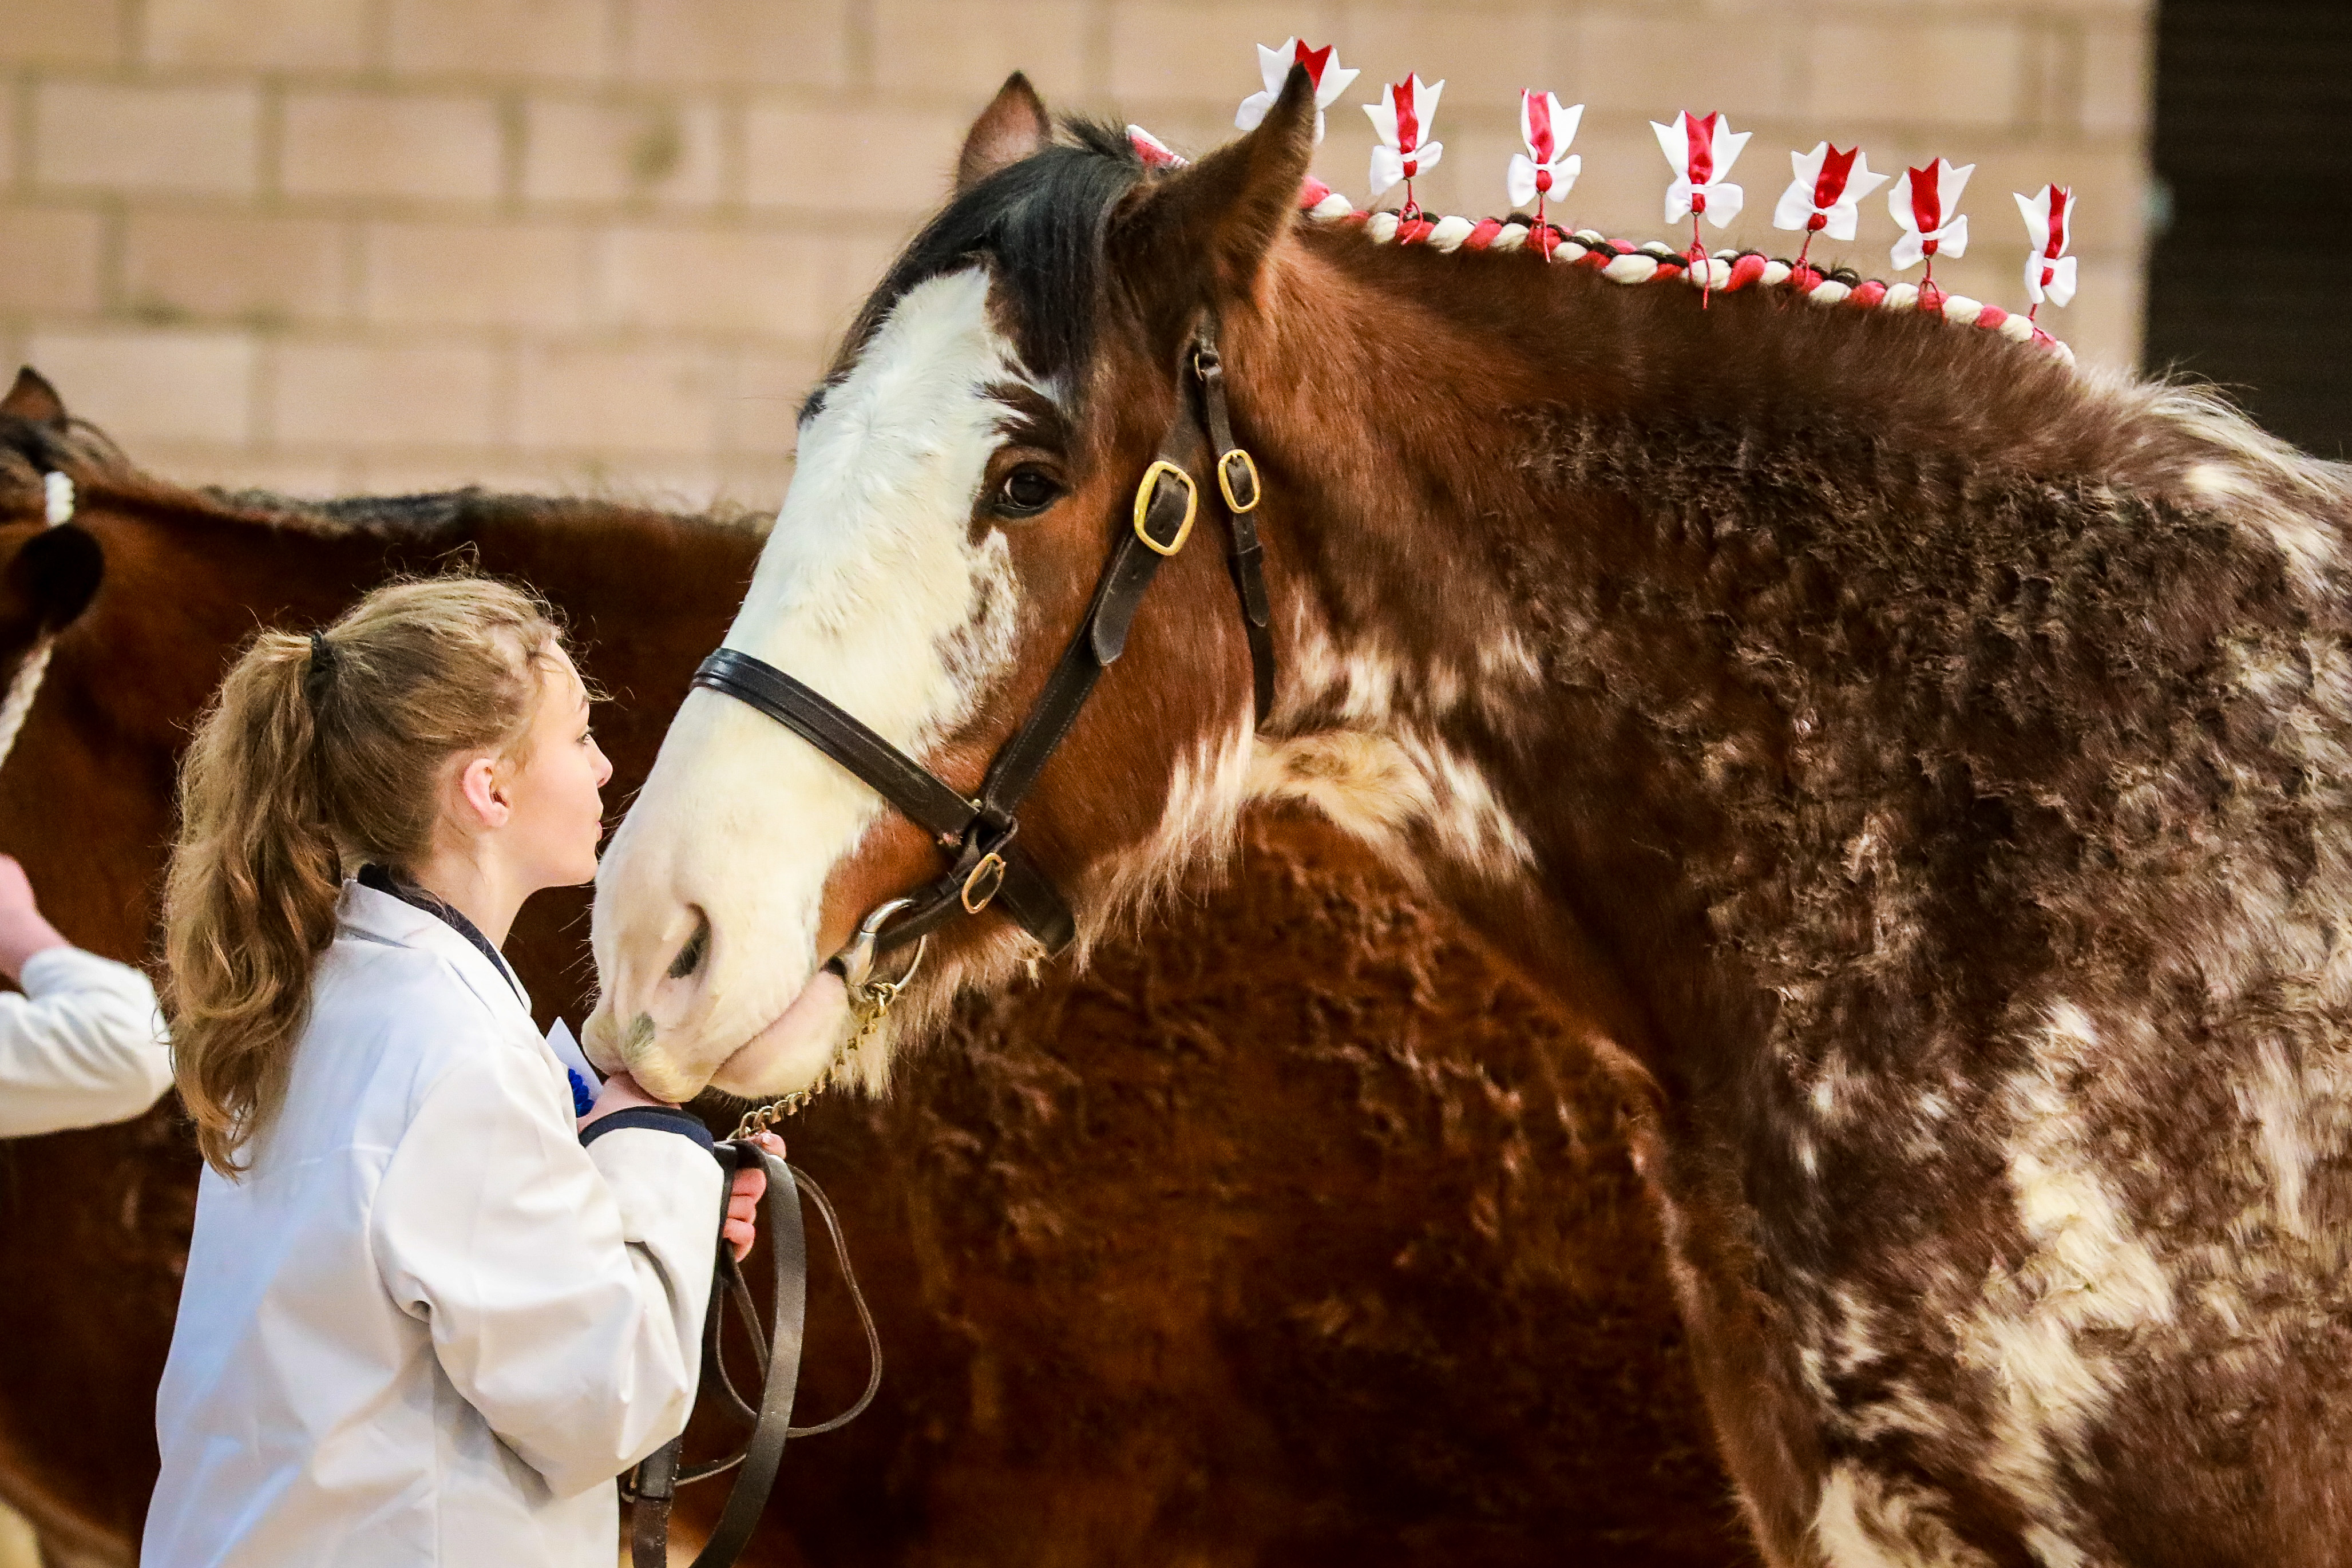 A Clydesdale prepares to face the judges at the Winter Fair in Lanark.